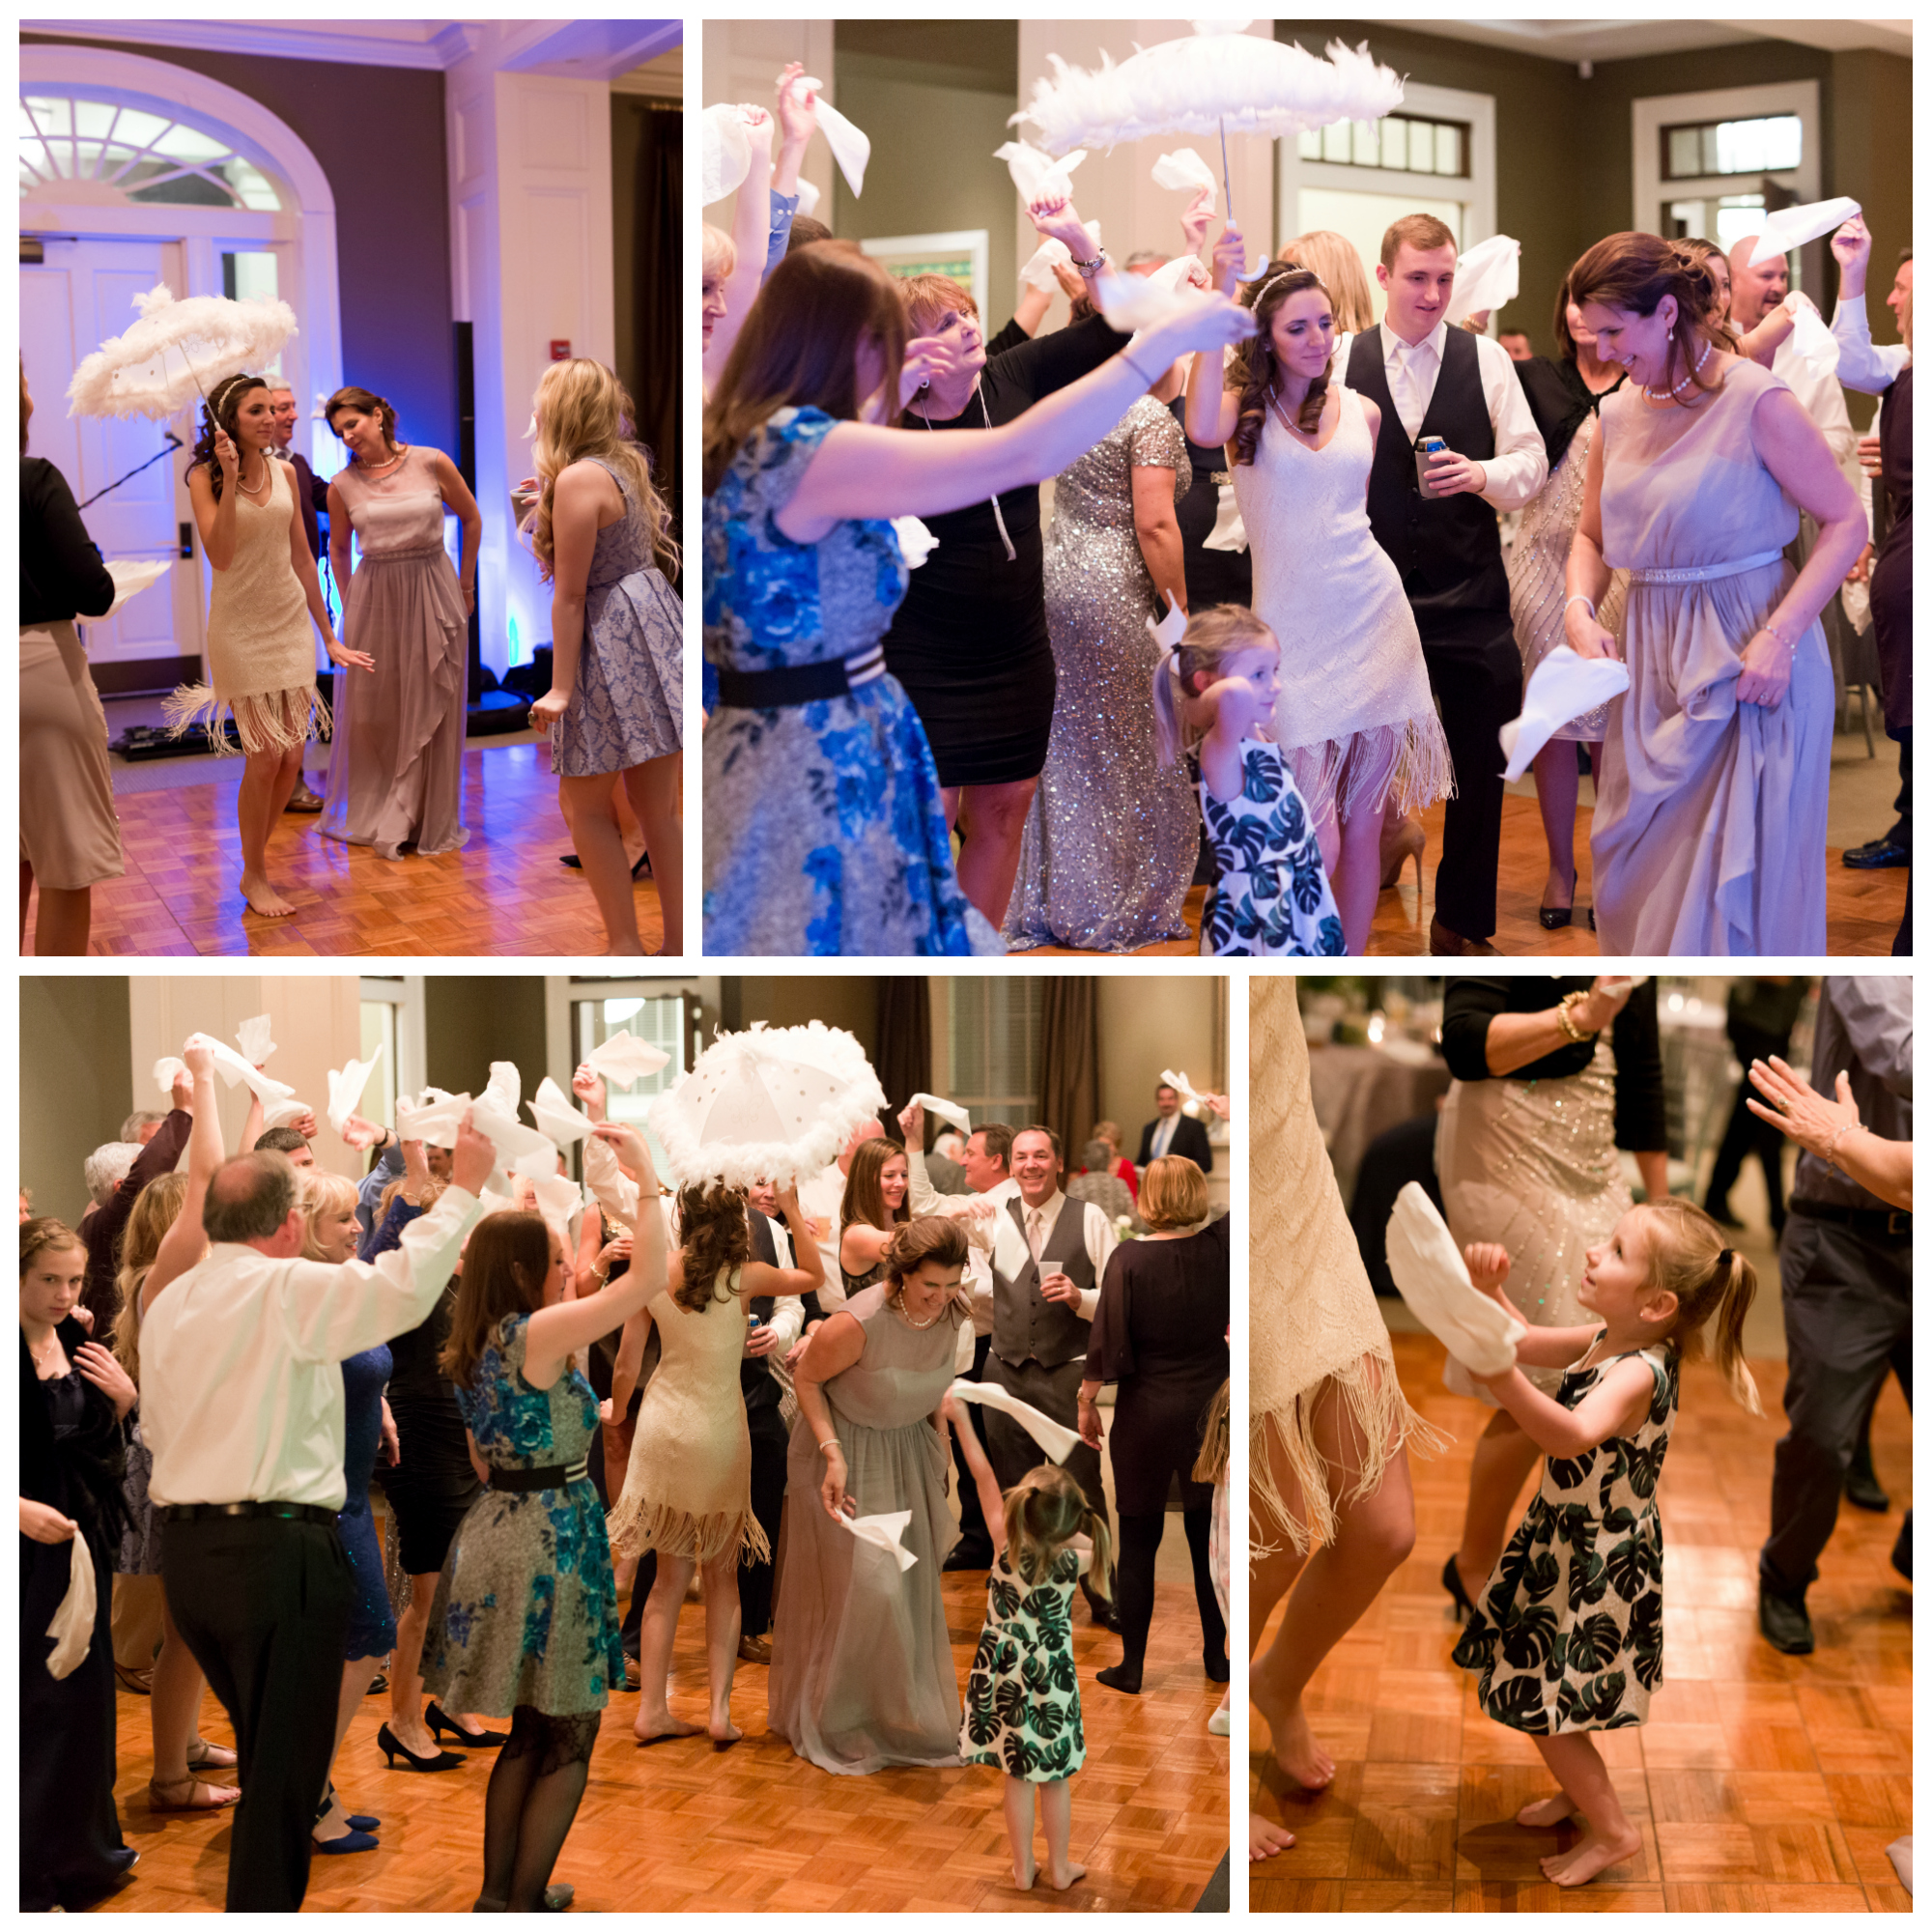 New Orleans style umbrella dance at wedding